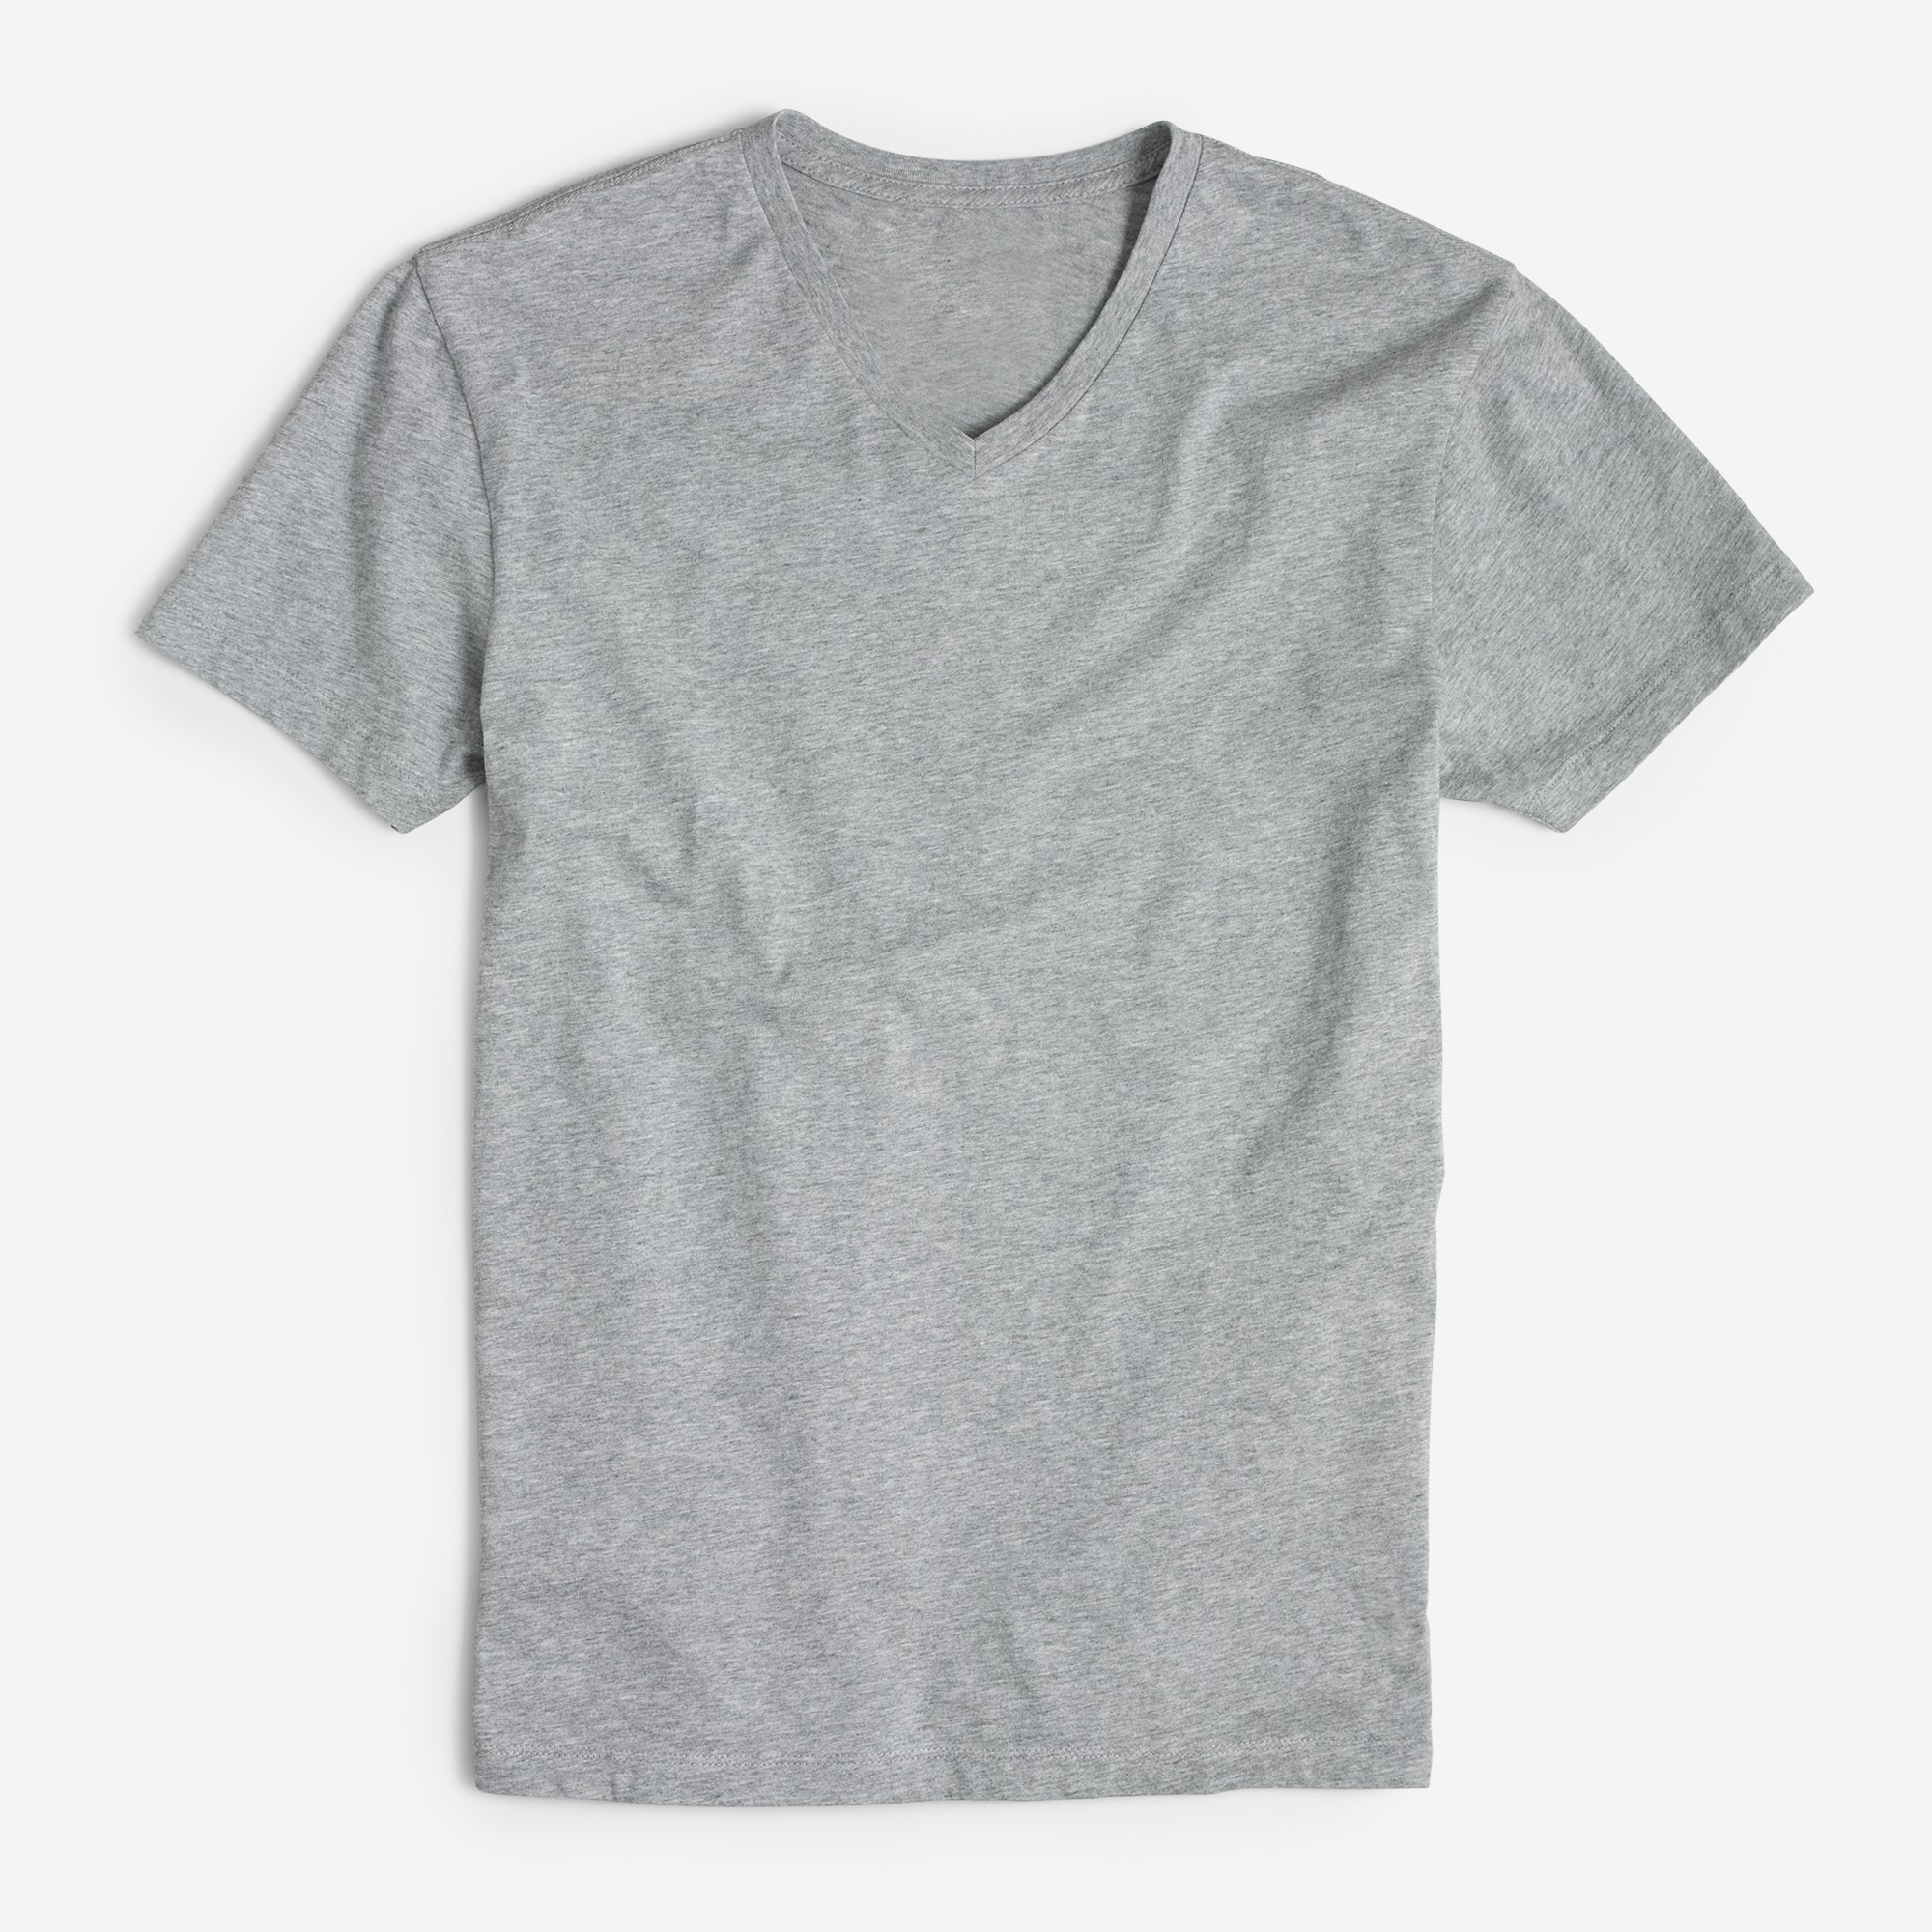 J.Crew Mercantile slim Broken-in V-neck T-shirt factorymen t-shirts & henleys c